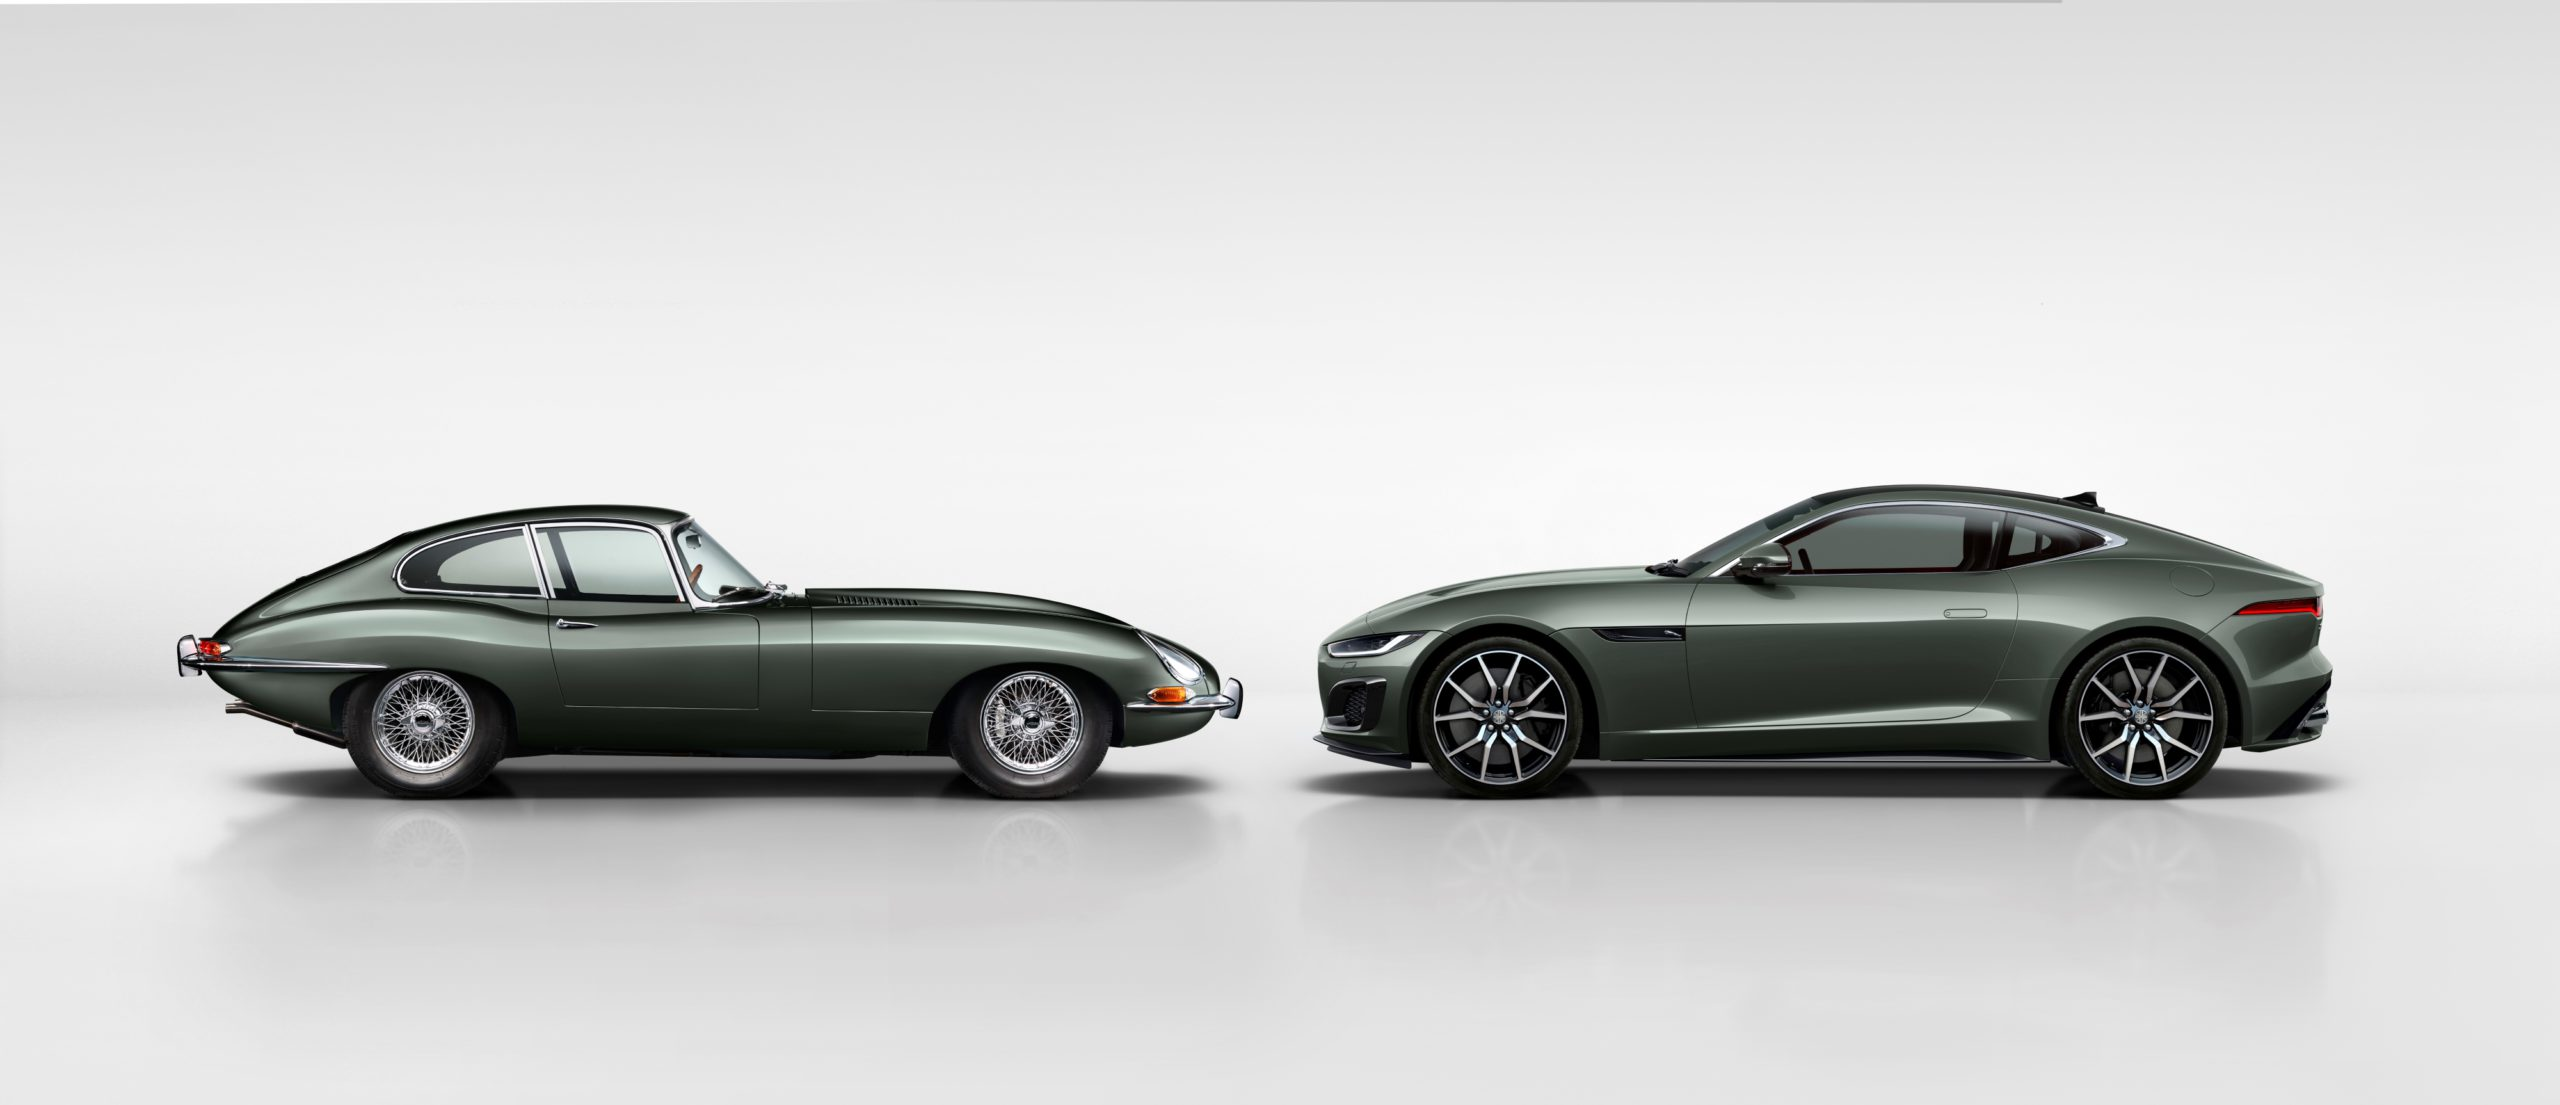 2021 Jaguar F-Type Heritage 60 Edition with E-Type